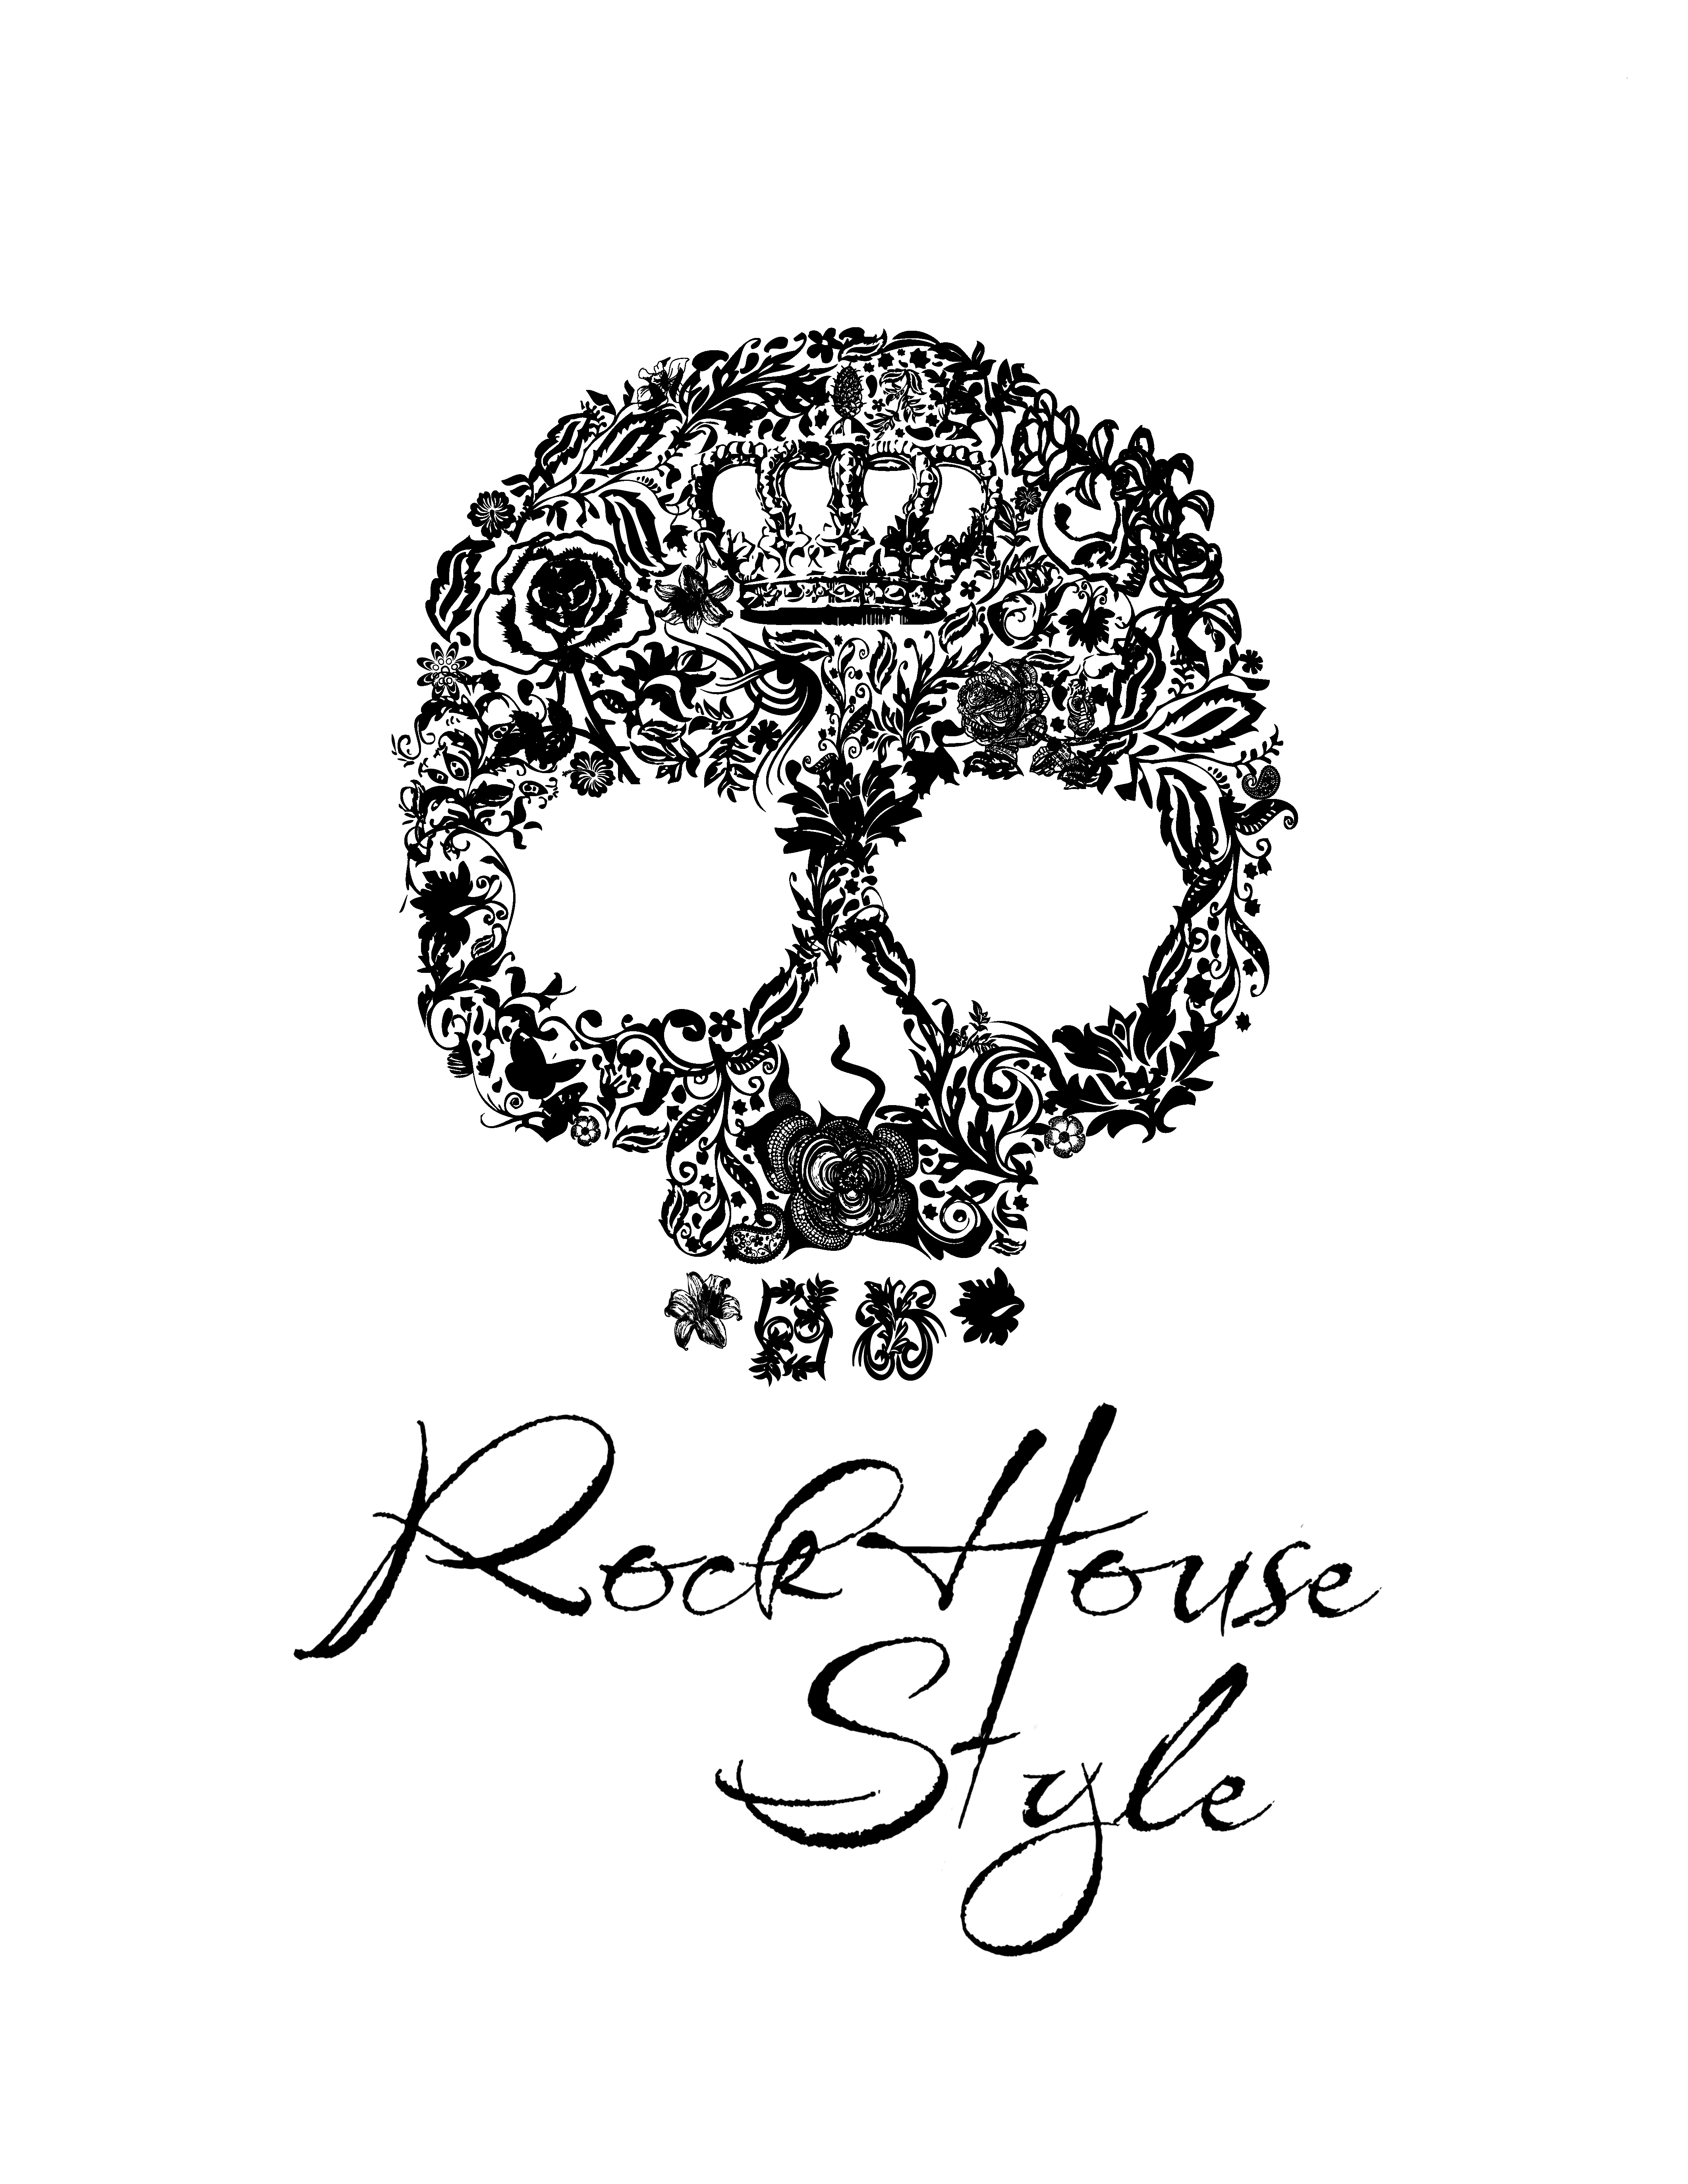 ROCK HOUSE STYLE